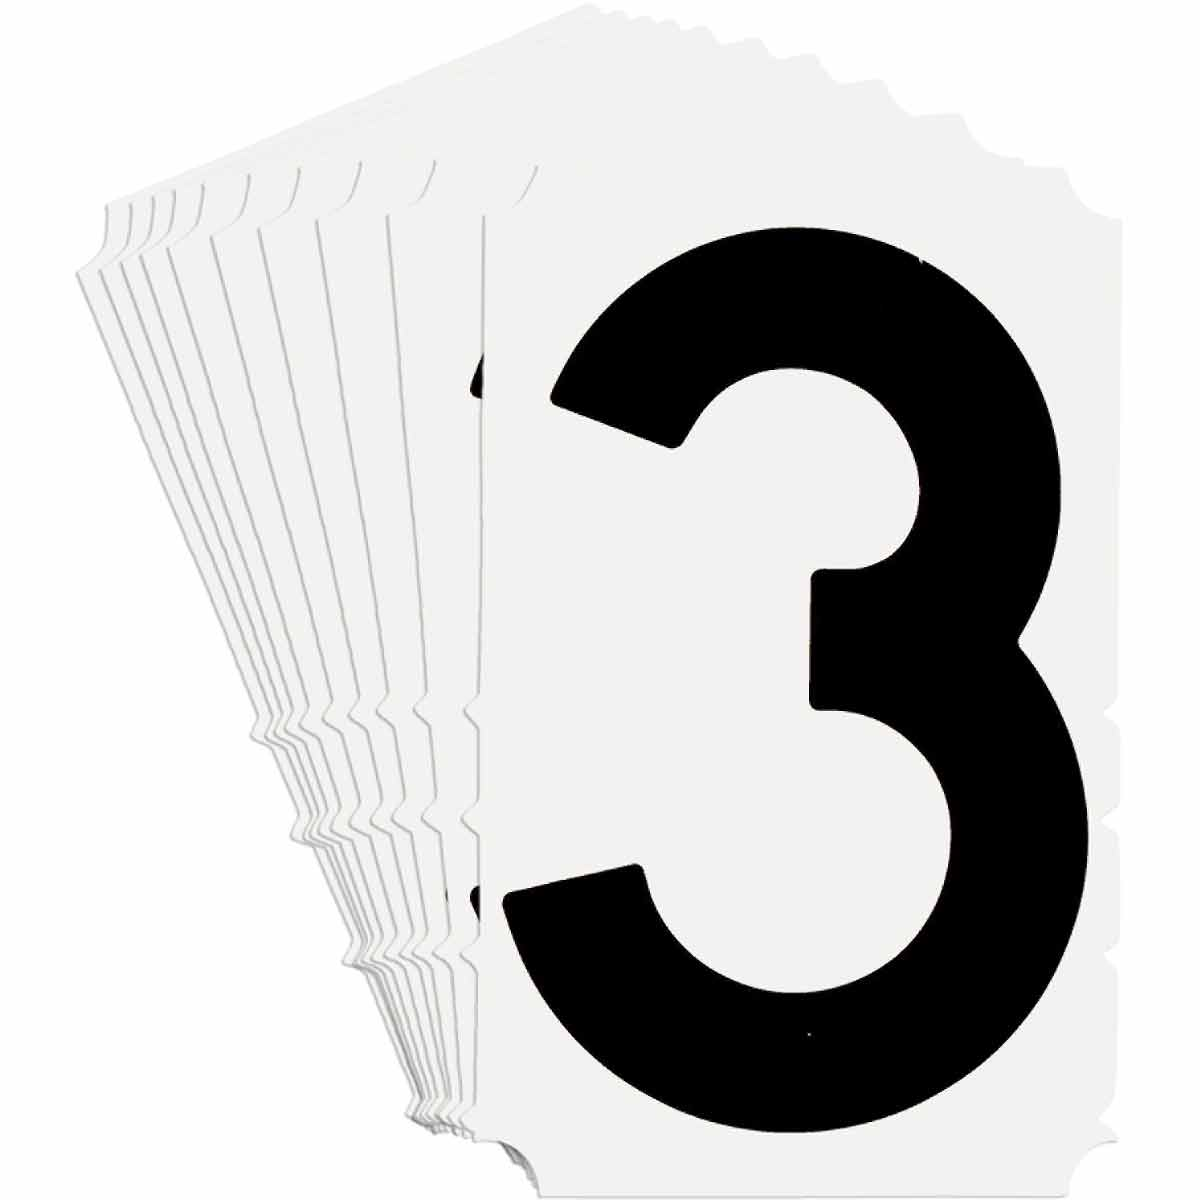 Brady® Quik-Align® 5140-3 Non-Reflective Number Label, 4 in H Black 3 Character, White Background, B-933 Vinyl